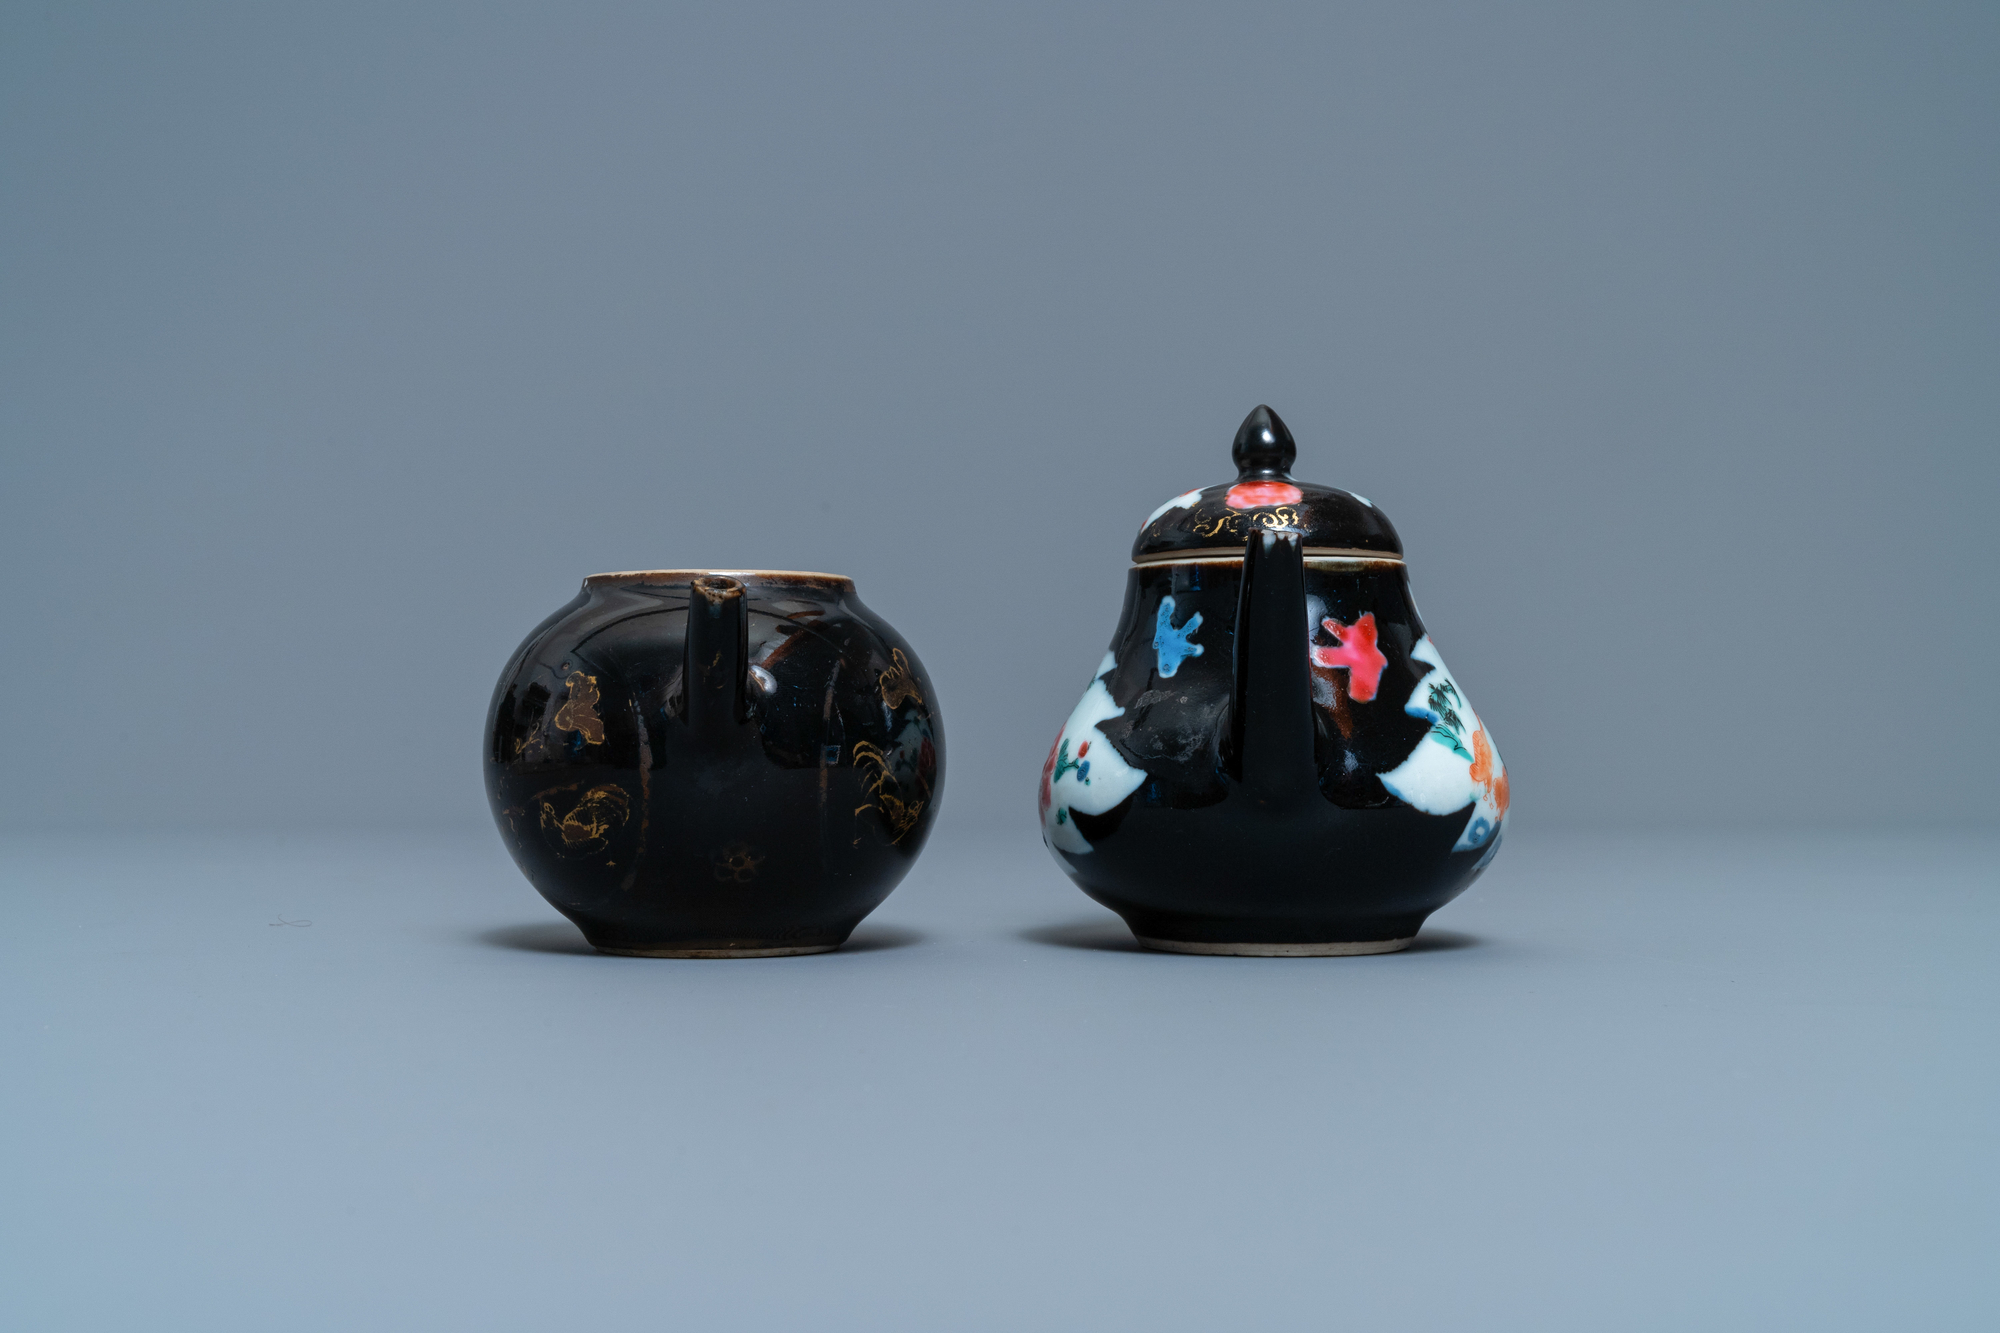 Two Chinese famille noire teapots, a pattipan and two spoon trays, Yongzheng/Qianlong - Image 5 of 9